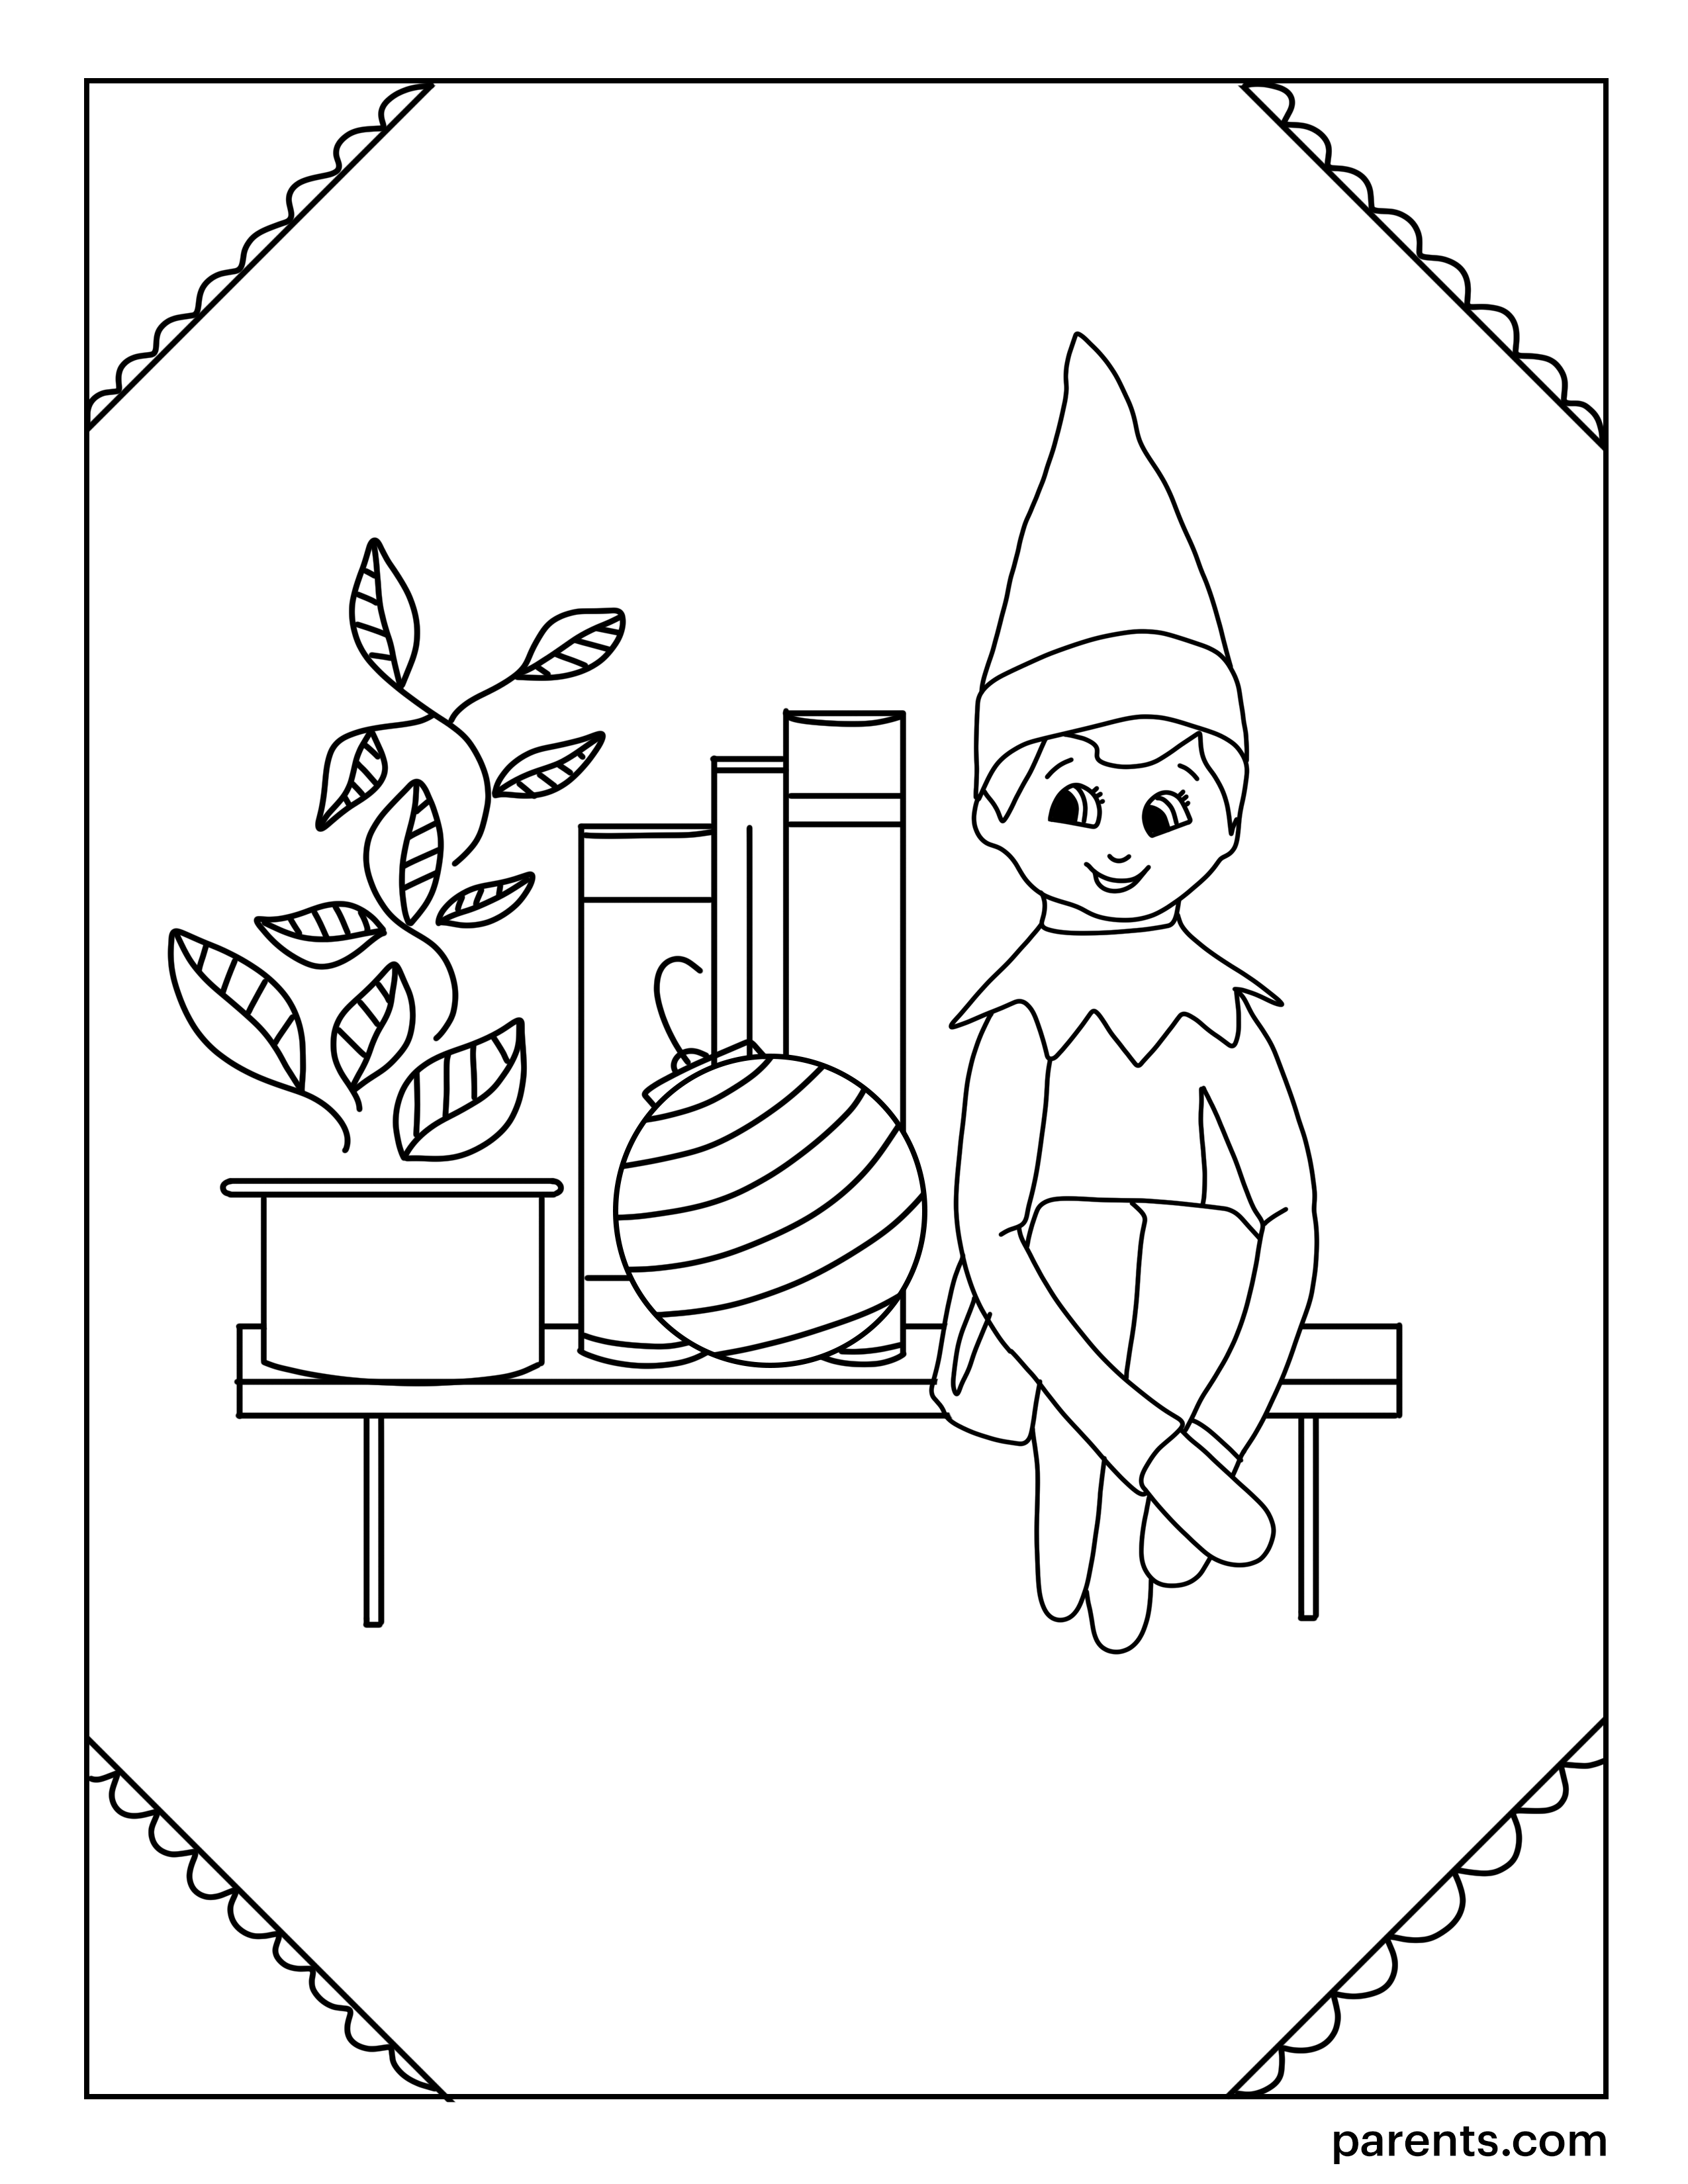 7 Elf On The Shelf Inspired Coloring Pages To Get Kids Excited For Christmas Printable Christmas Coloring Pages Merry Christmas Coloring Pages Christmas Coloring Printables